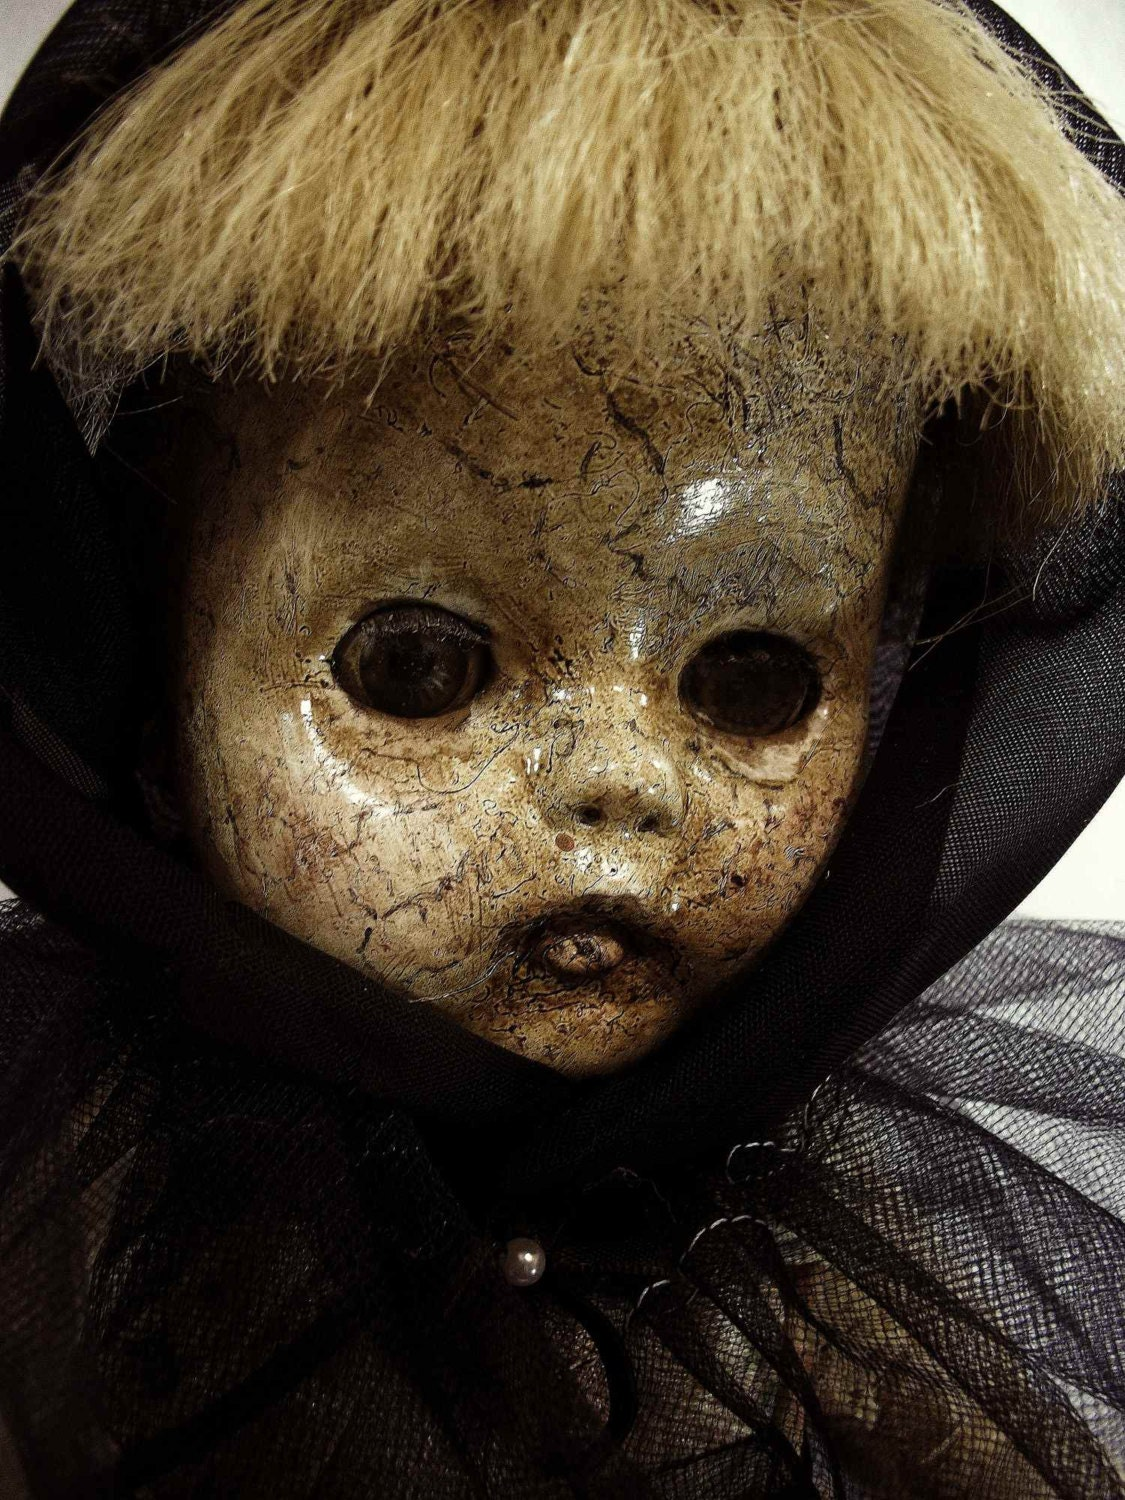 Creepy Vintage Doll Orphaned One of A Kind Altered by ... Creepy